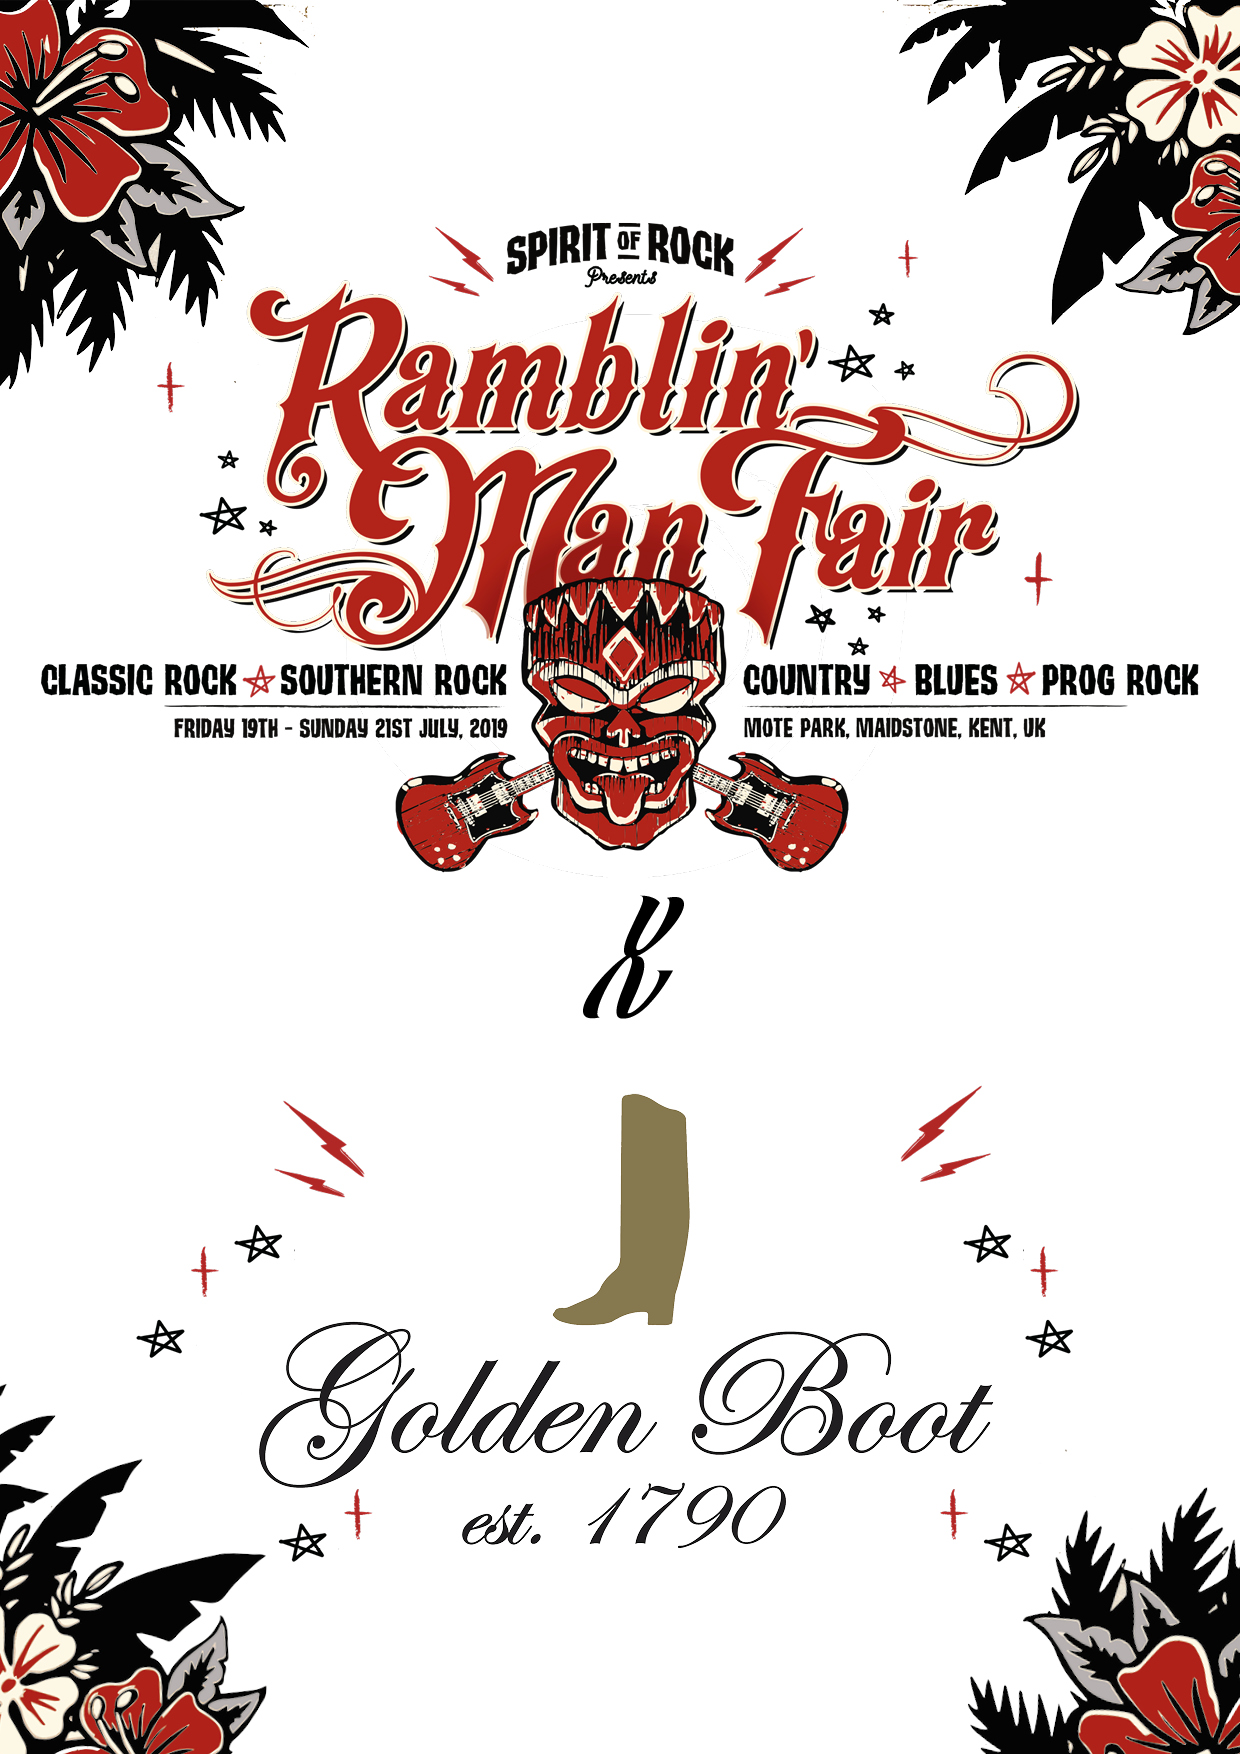 Ramblin' Man 2019 – be festival ready